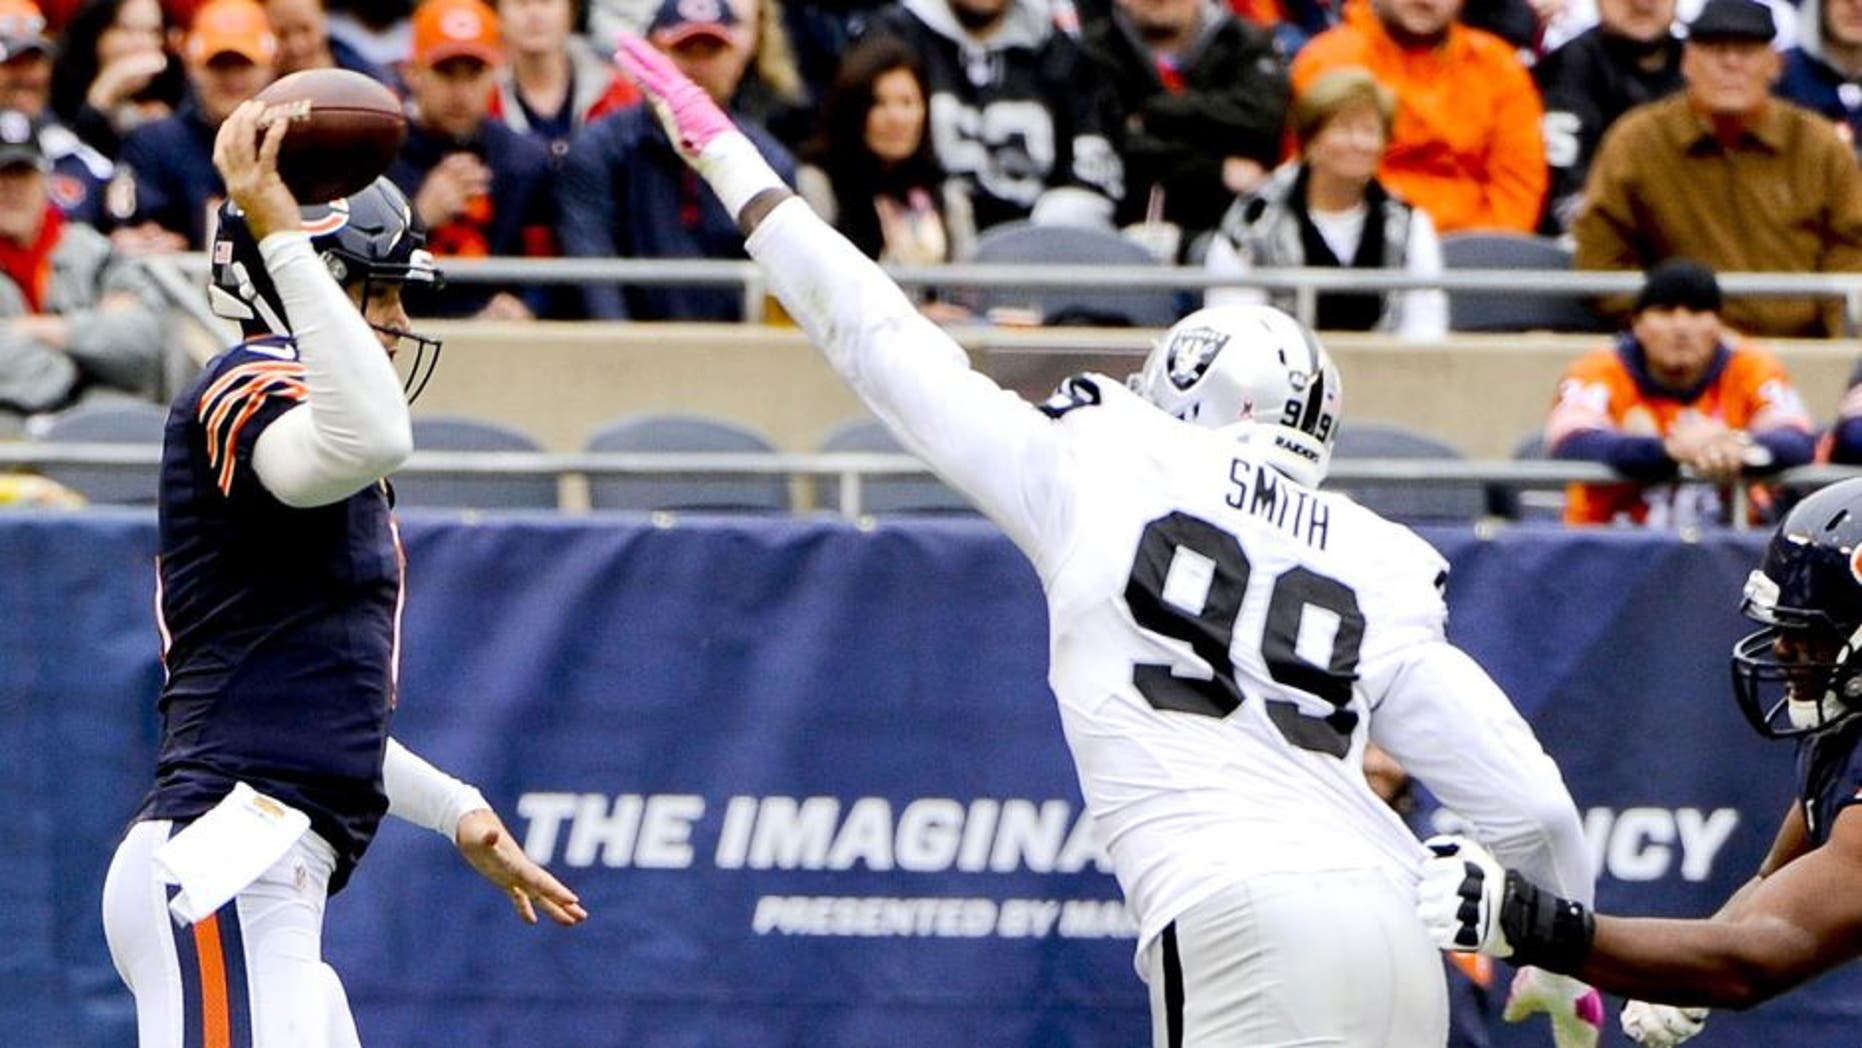 Oct 4, 2015; Chicago, IL, USA; Oakland Raiders outside linebacker Aldon Smith (99) tips the ball after Chicago Bears quarterback Jay Cutler (6) throws in the first quarter at Soldier Field. Mandatory Credit: Matt Marton-USA TODAY Sports